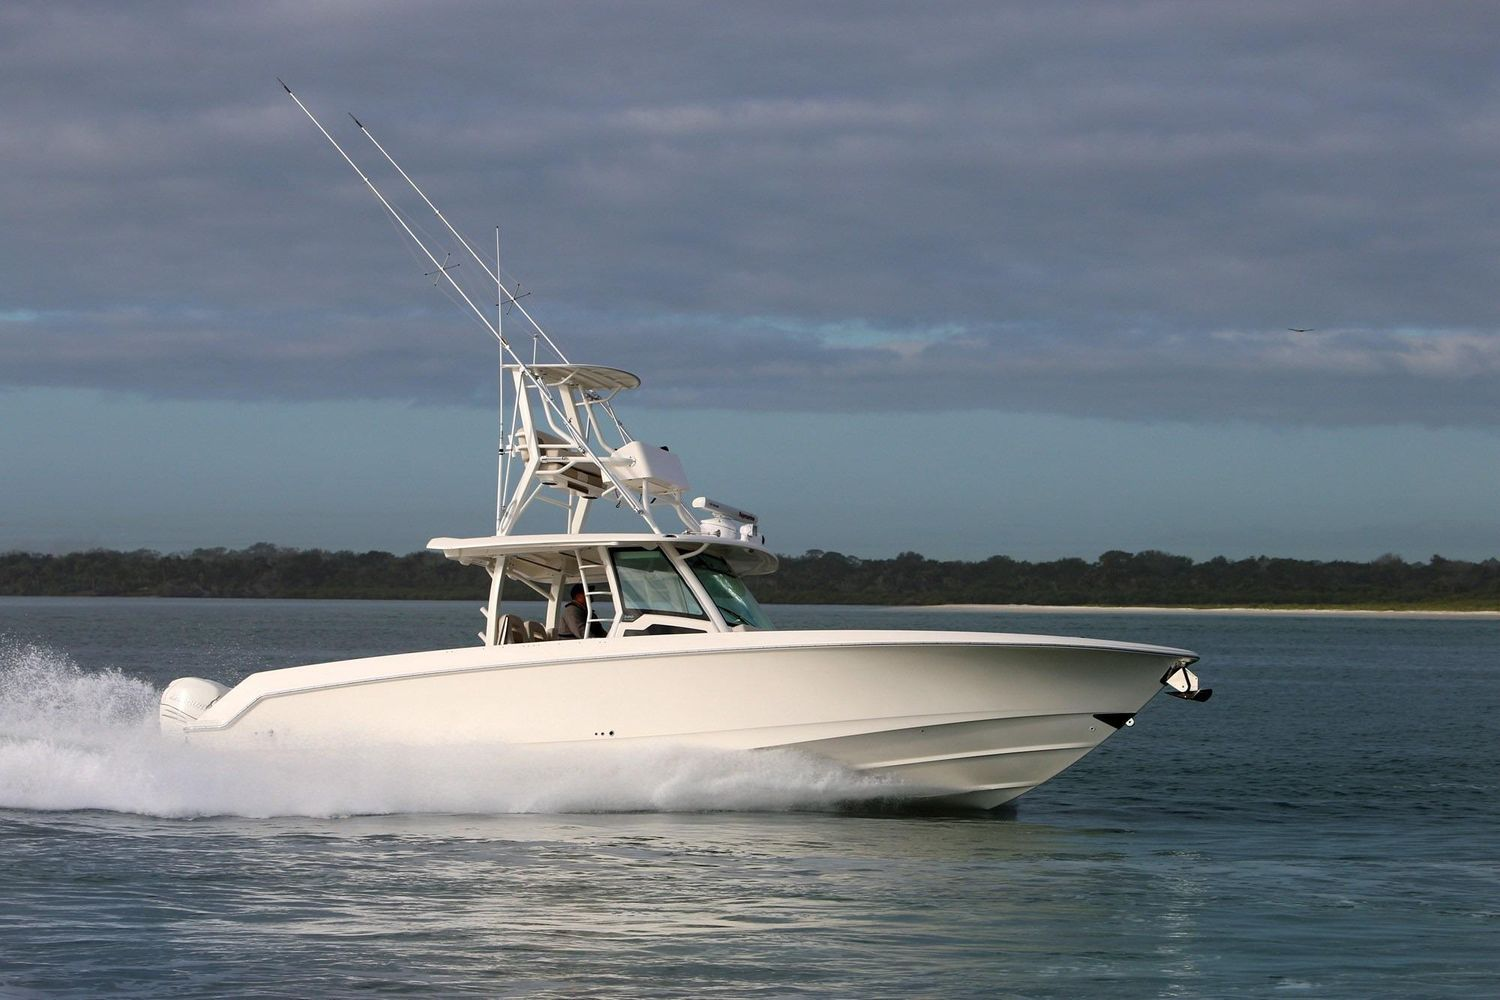 Thumbnail 2 for 2021 Boston Whaler 380 Outrage